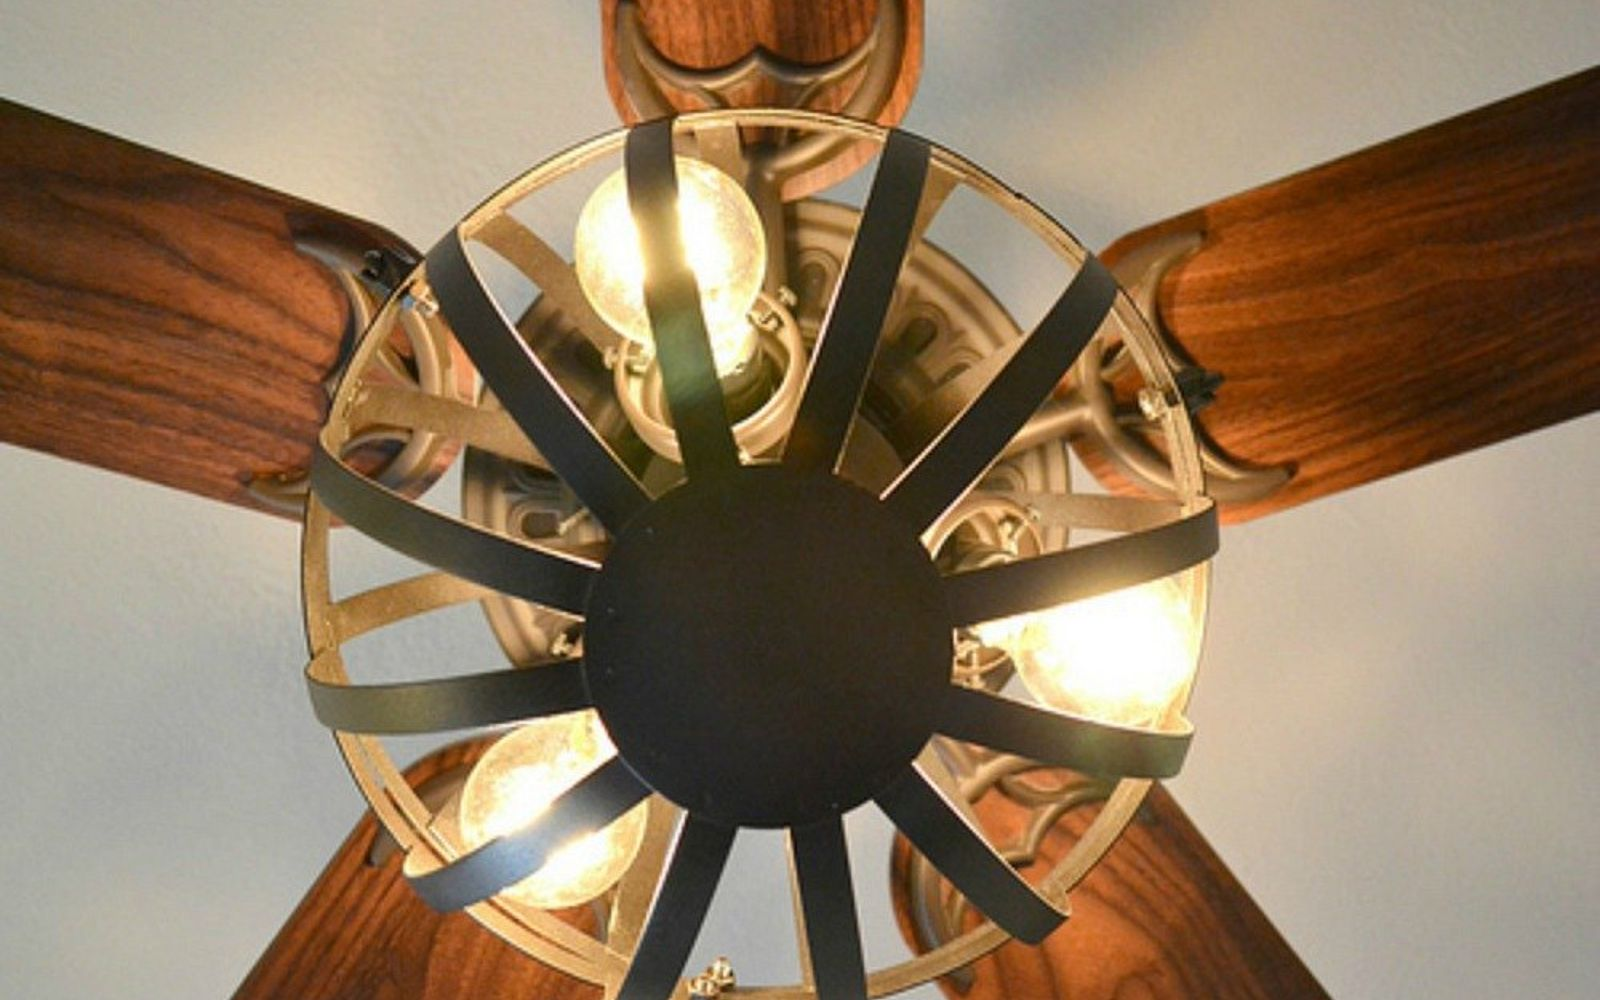 s 13 ways to upgrade your boring ceiling fan on a budget, appliances, wall decor, Use a hanging planter as an industrial shade